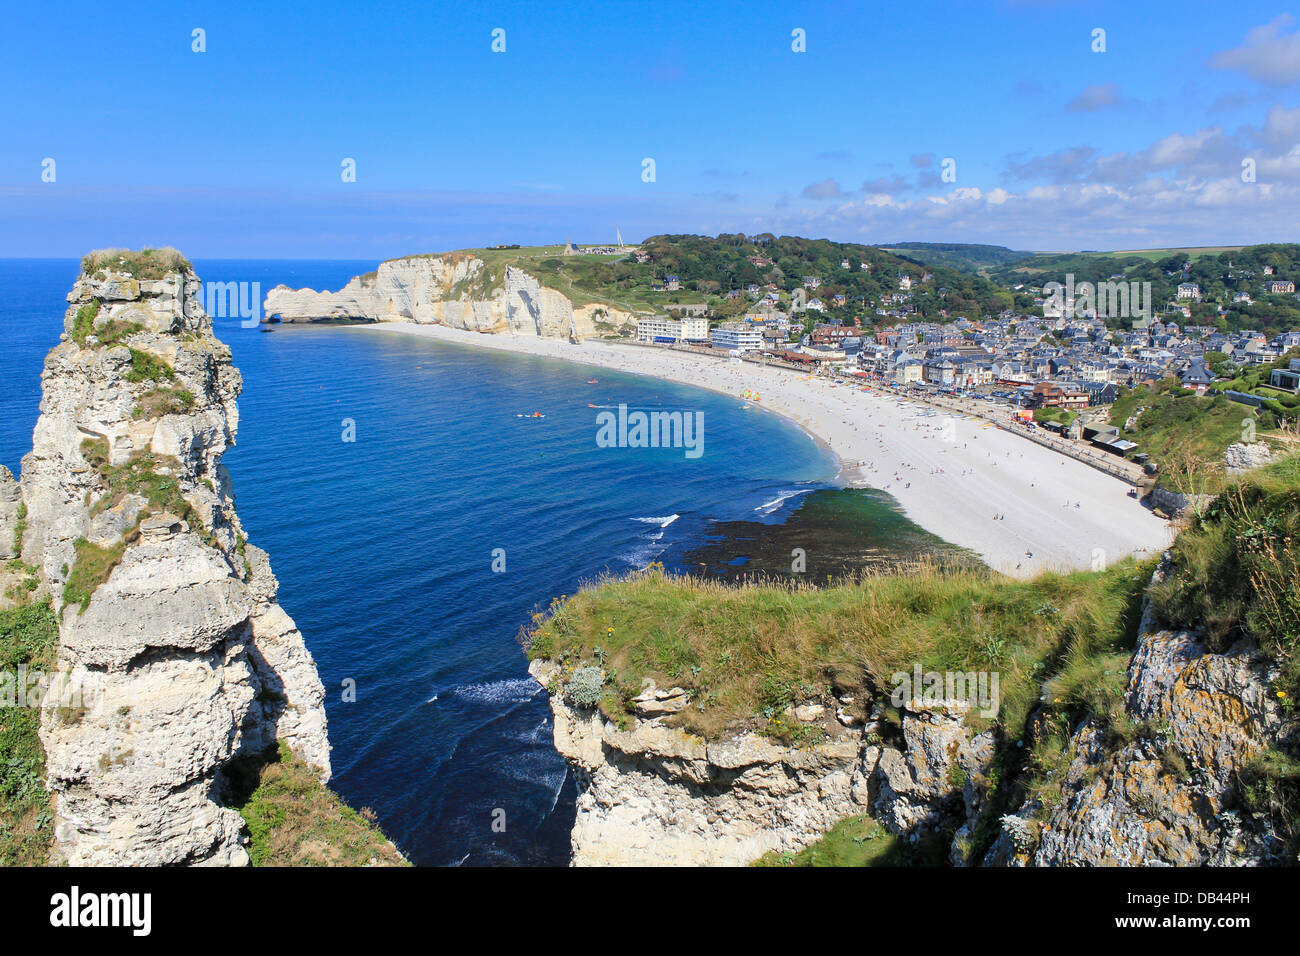 Etretat, aerial view of village on Normandy coast, France - Stock Image